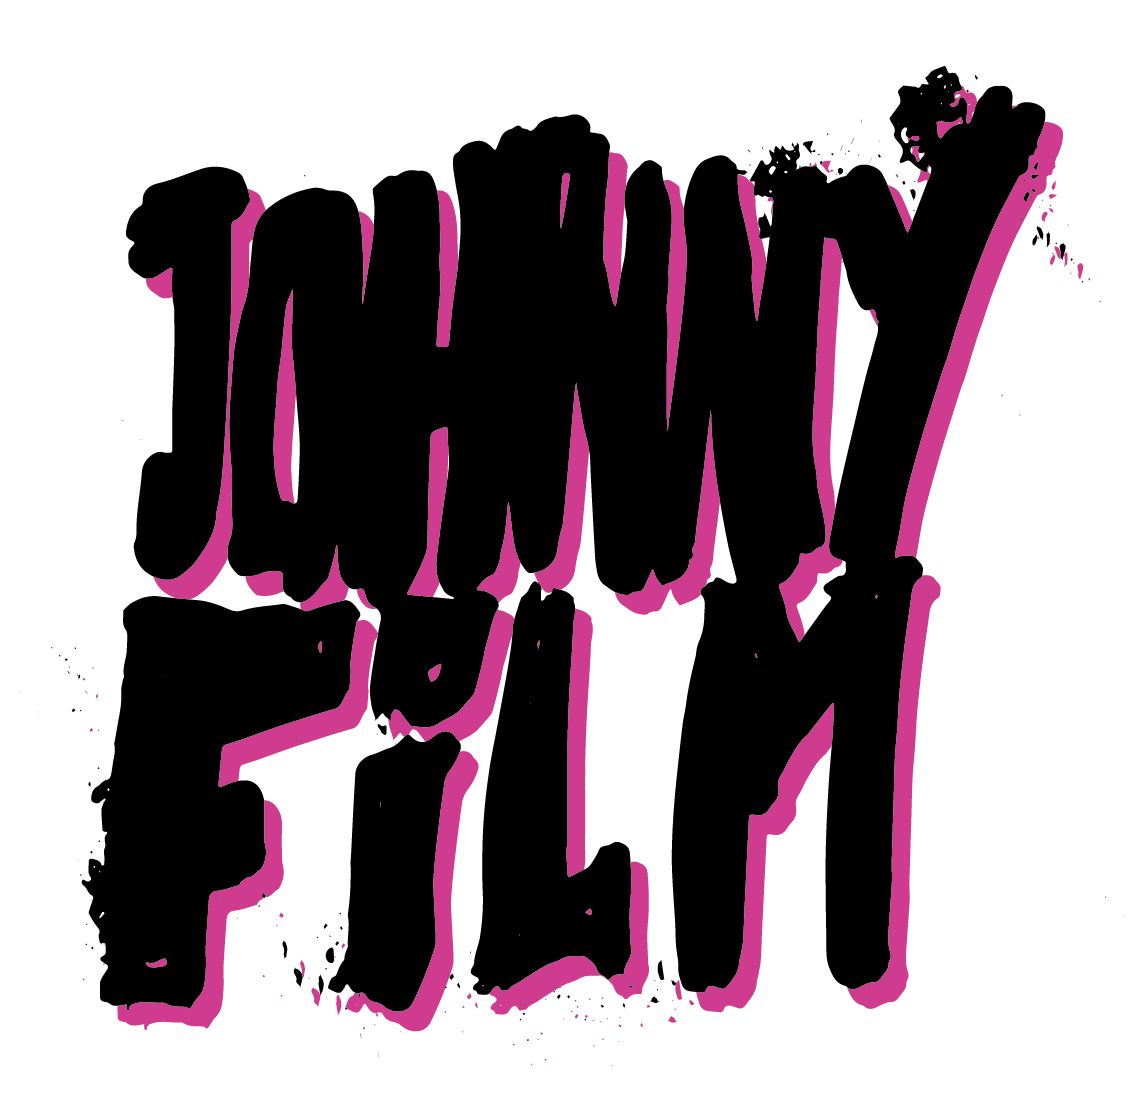 Johnny Film